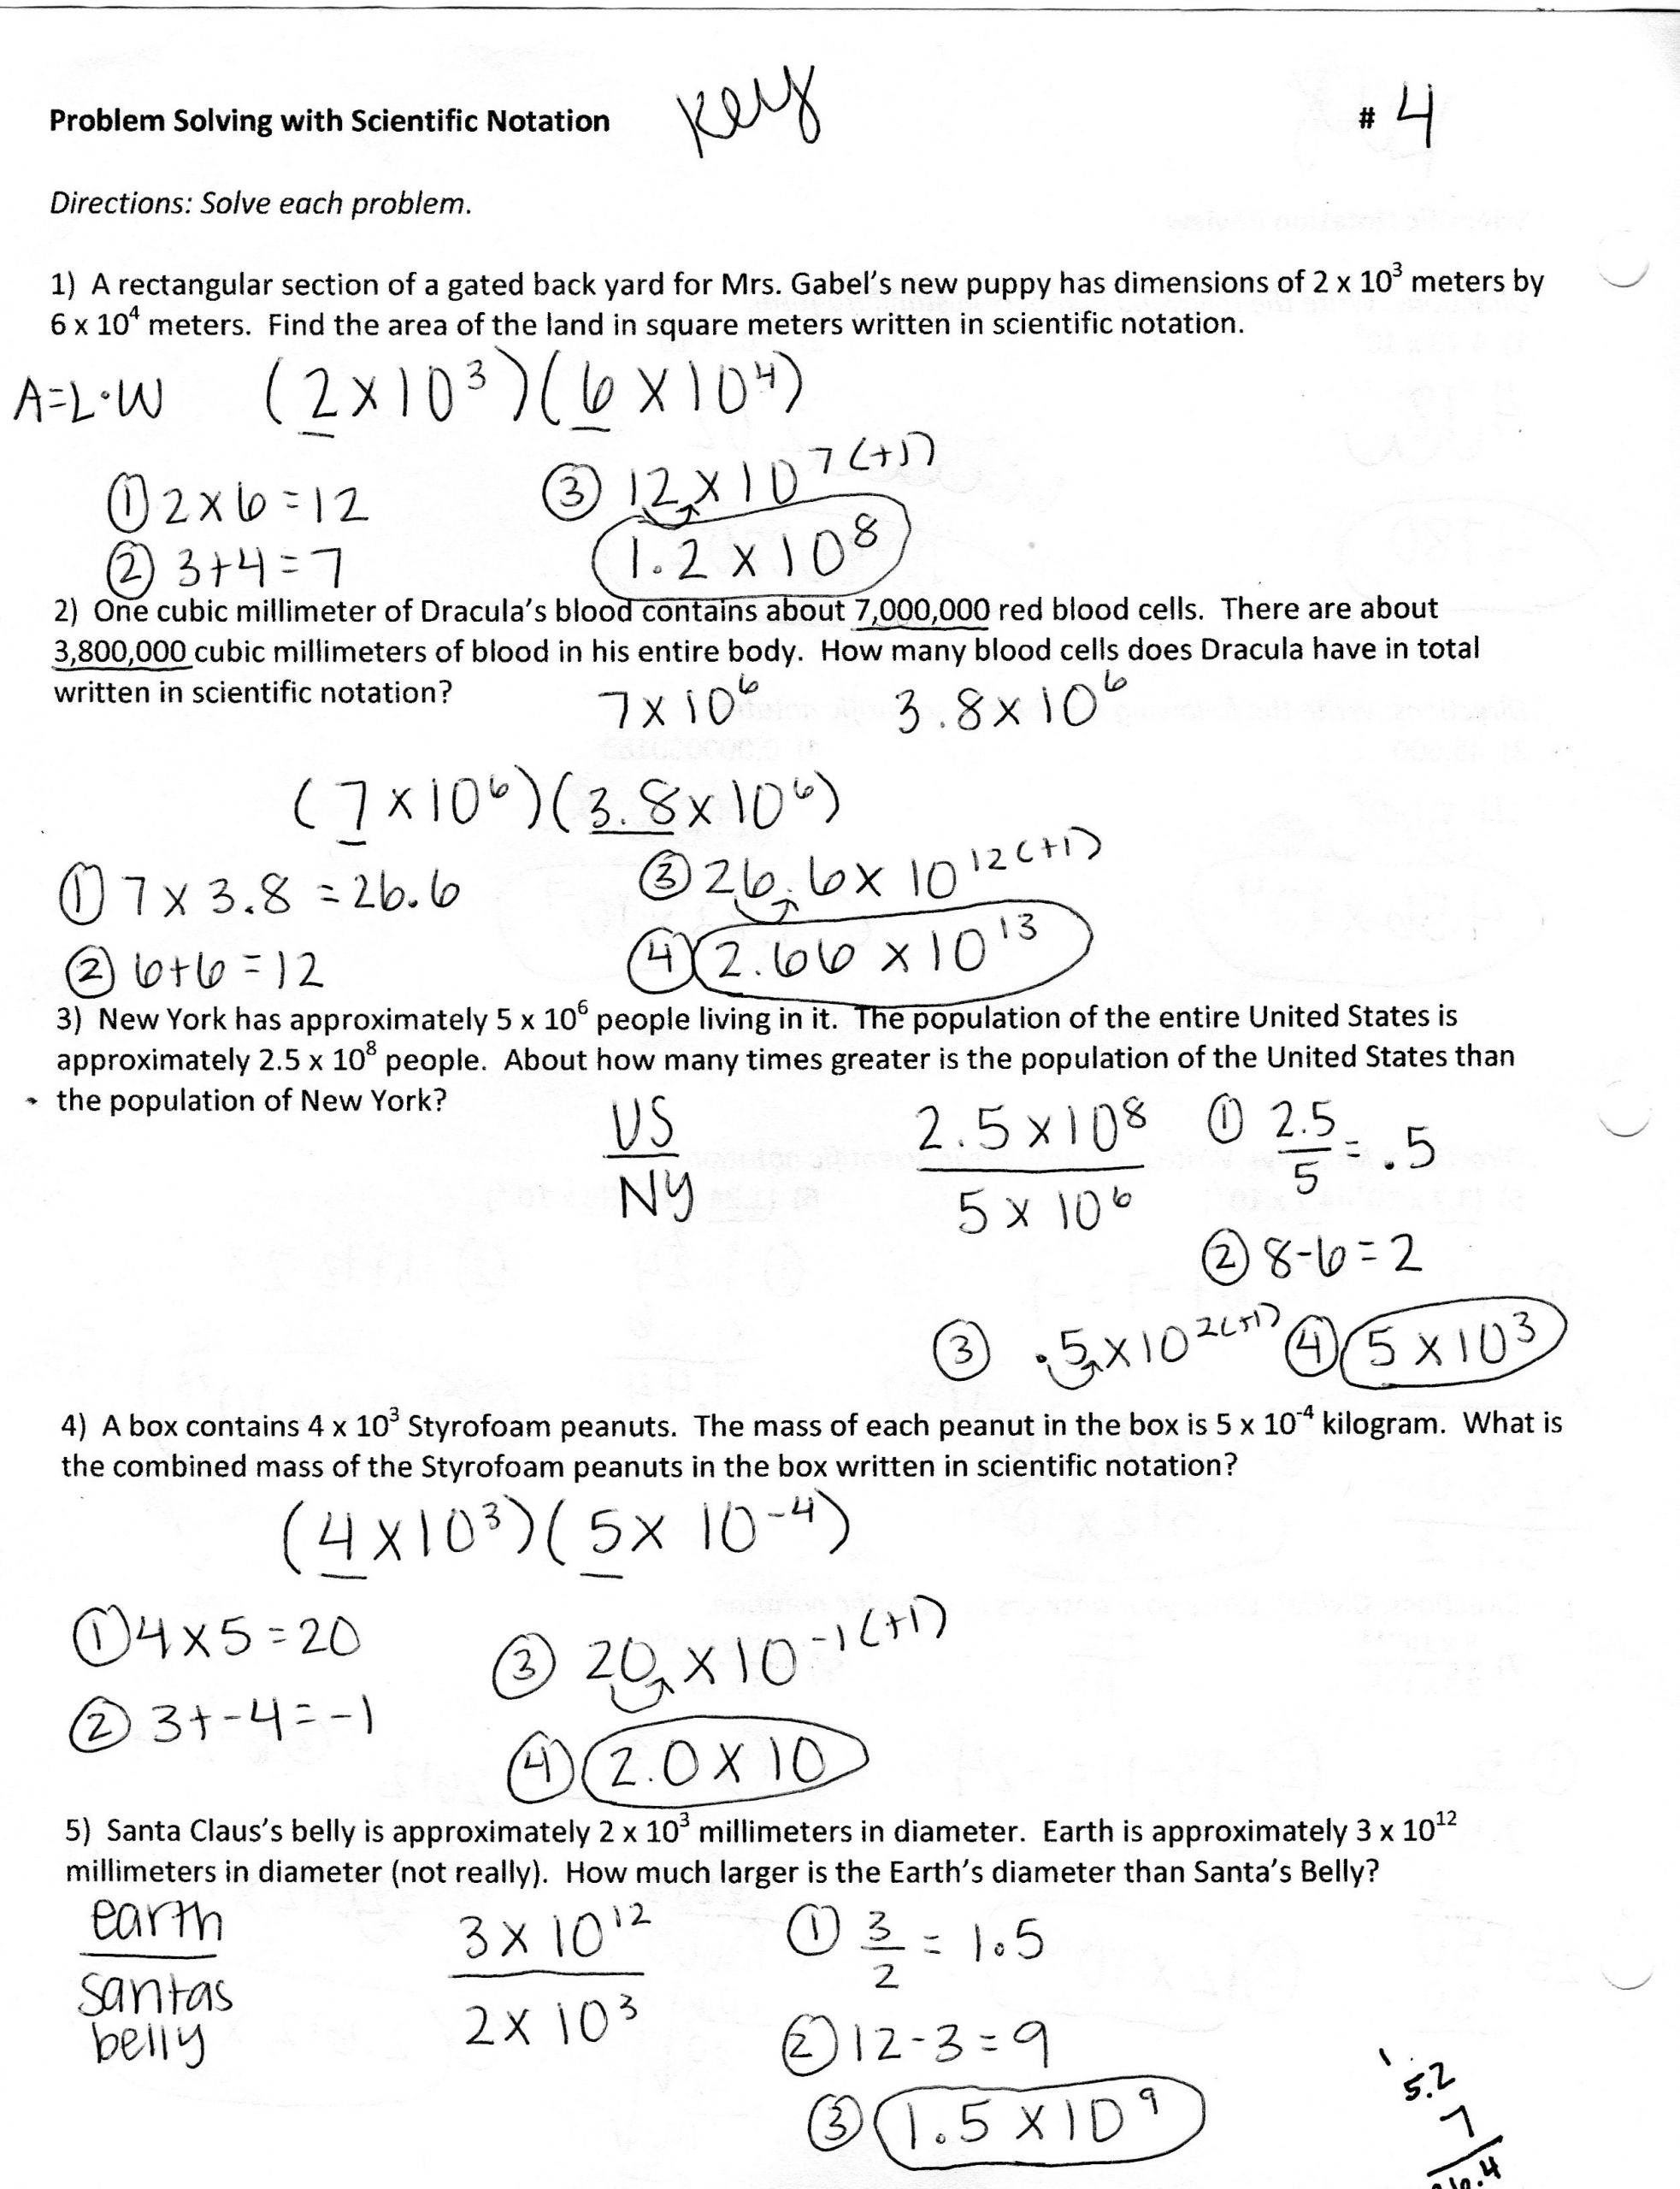 Operations with Scientific Notation Worksheet